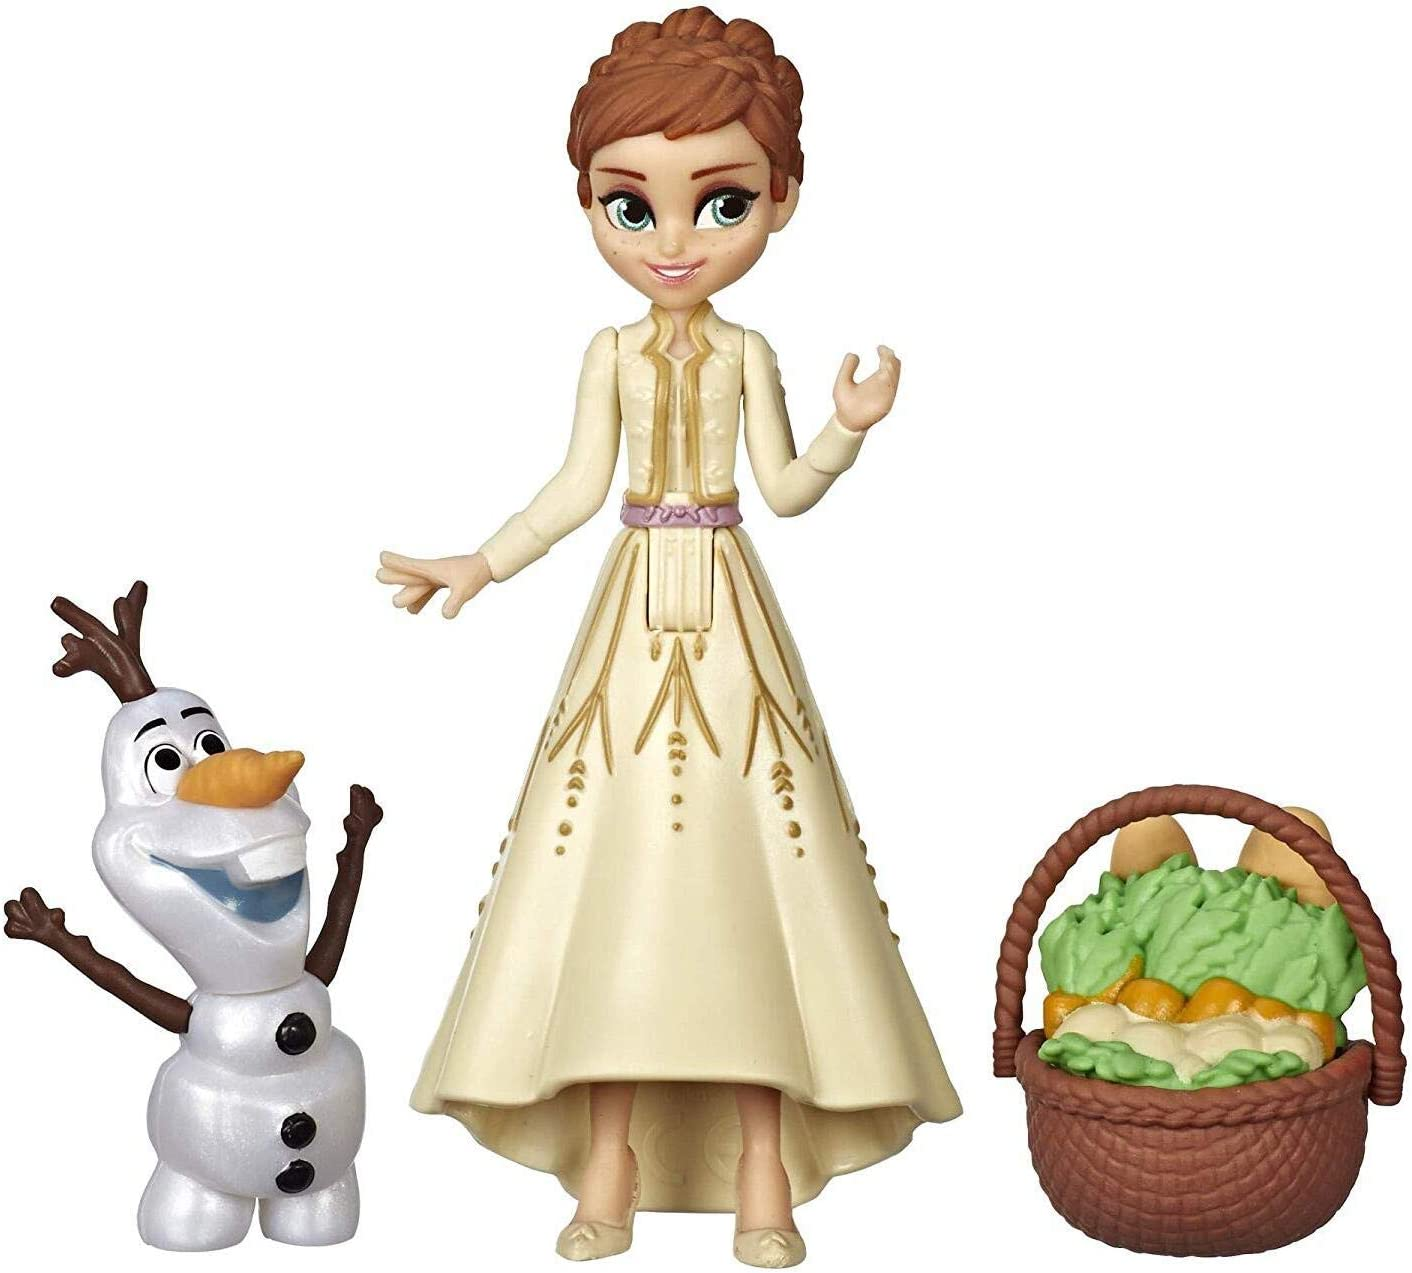 Disney Frozen Anna & Olaf Small Dolls with Basket Accessory, Inspired by The Frozen 2 Movie